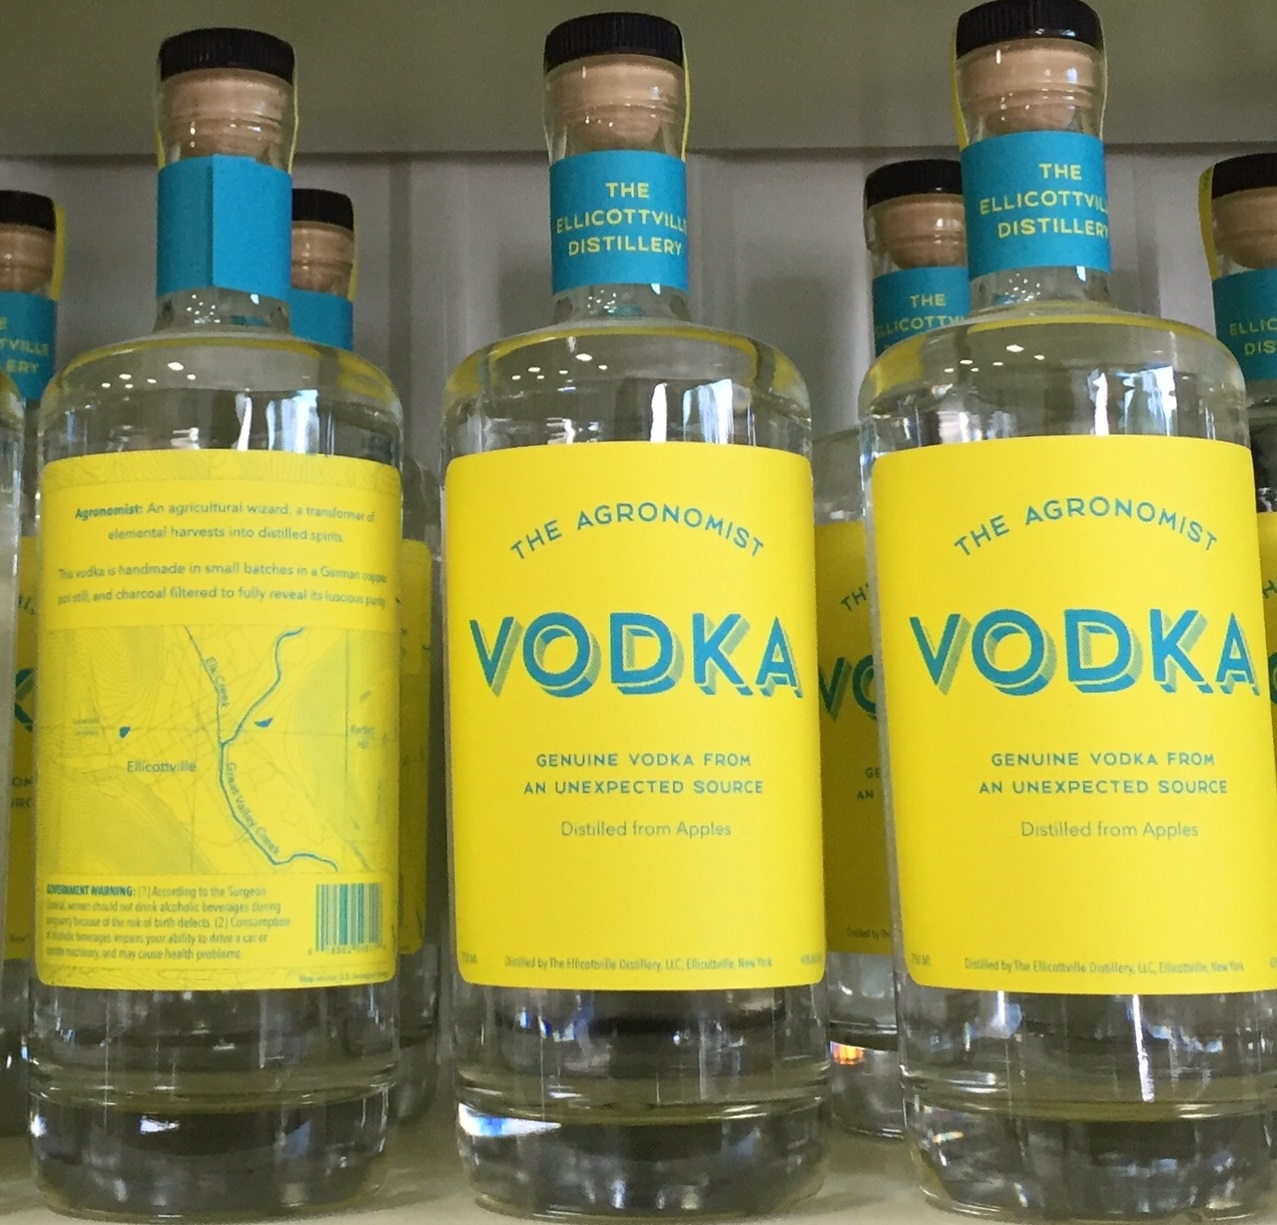 One of two of The Agronomist's vodkas that will be ready for Ellicottville Distillery's debut.